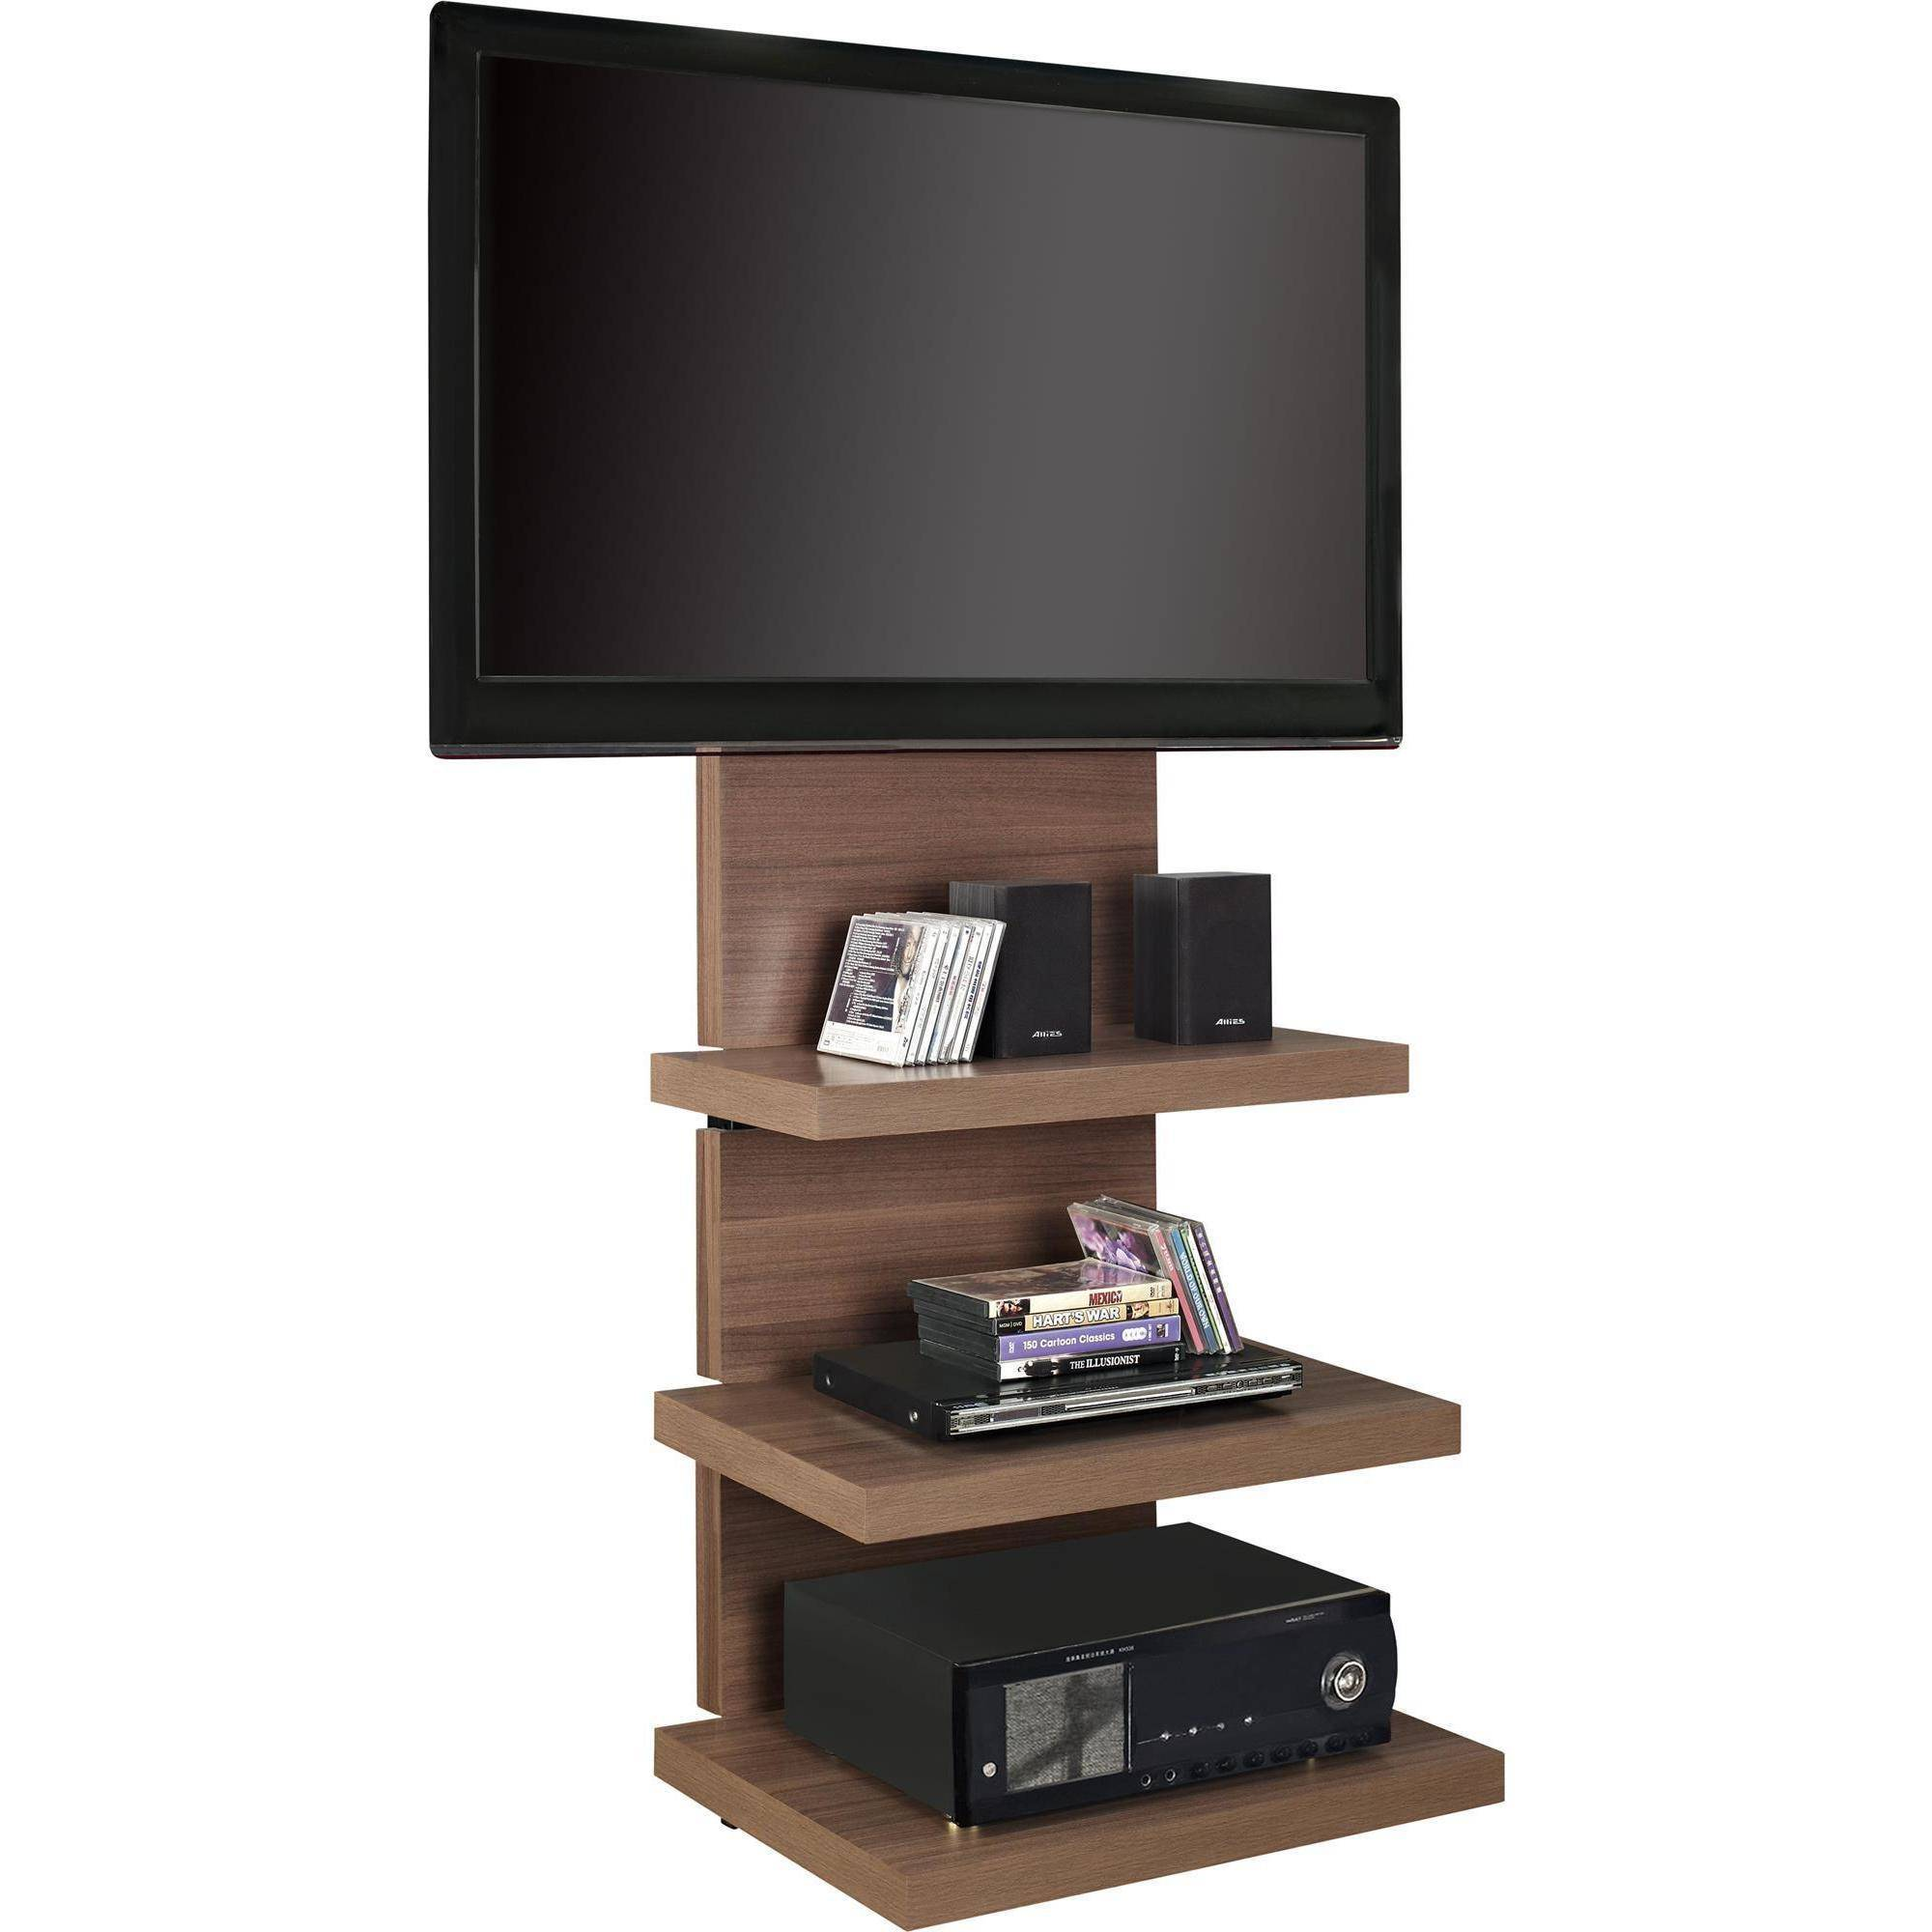 ameriwood home elevation altramount tv stand for tvs up to   - ameriwood home elevation altramount tv stand for tvs up to  wide black walmartcom